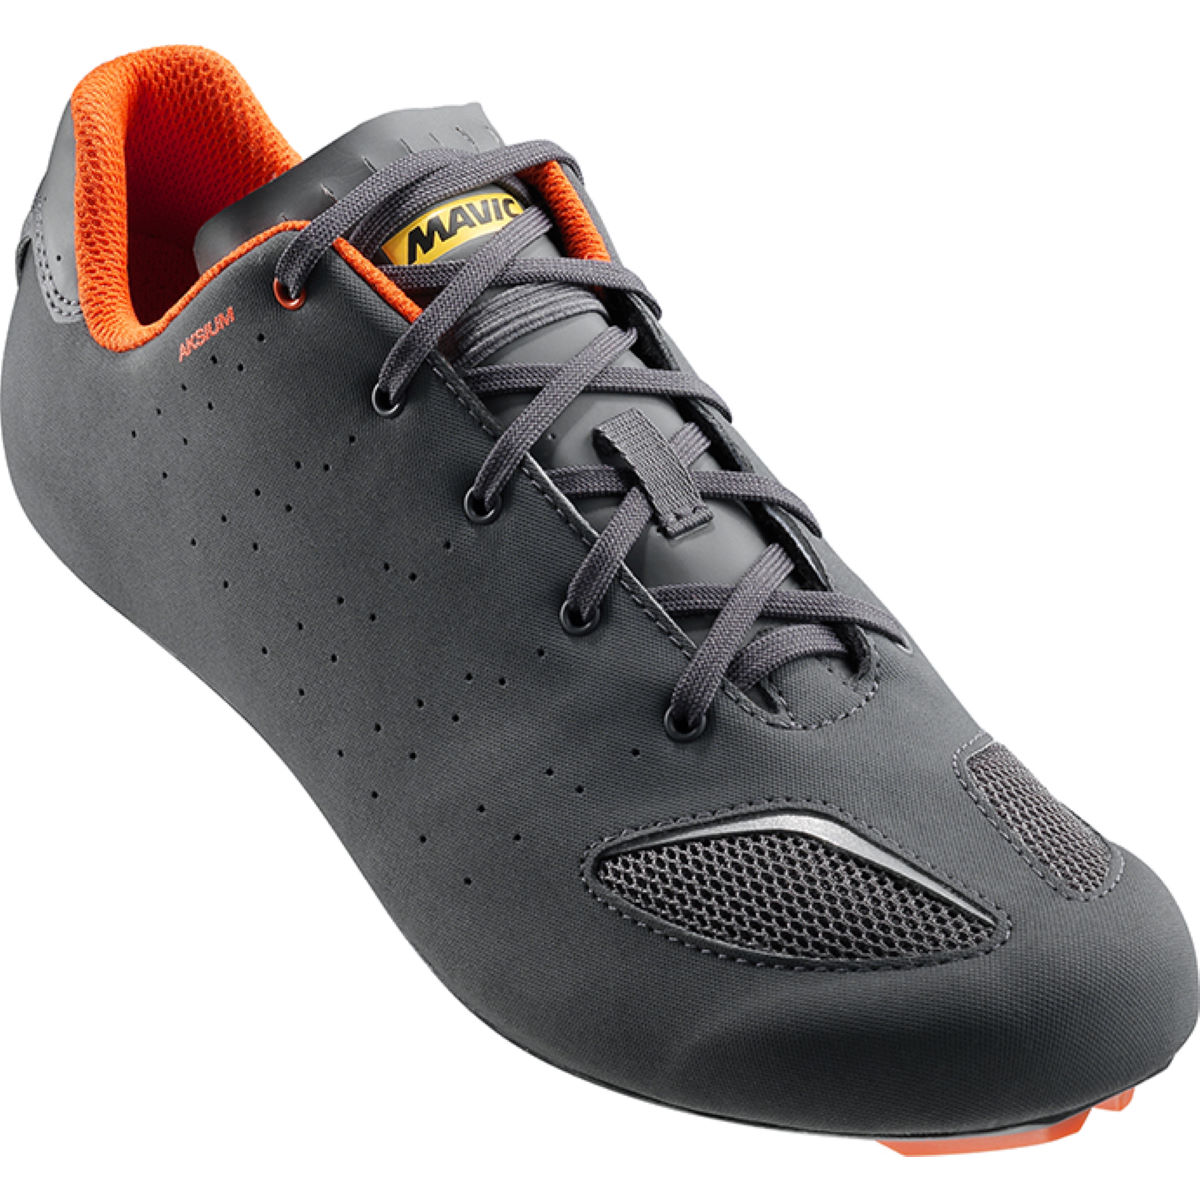 Chaussures Mavic Aksium III - 12 UK Gris Chaussures de route